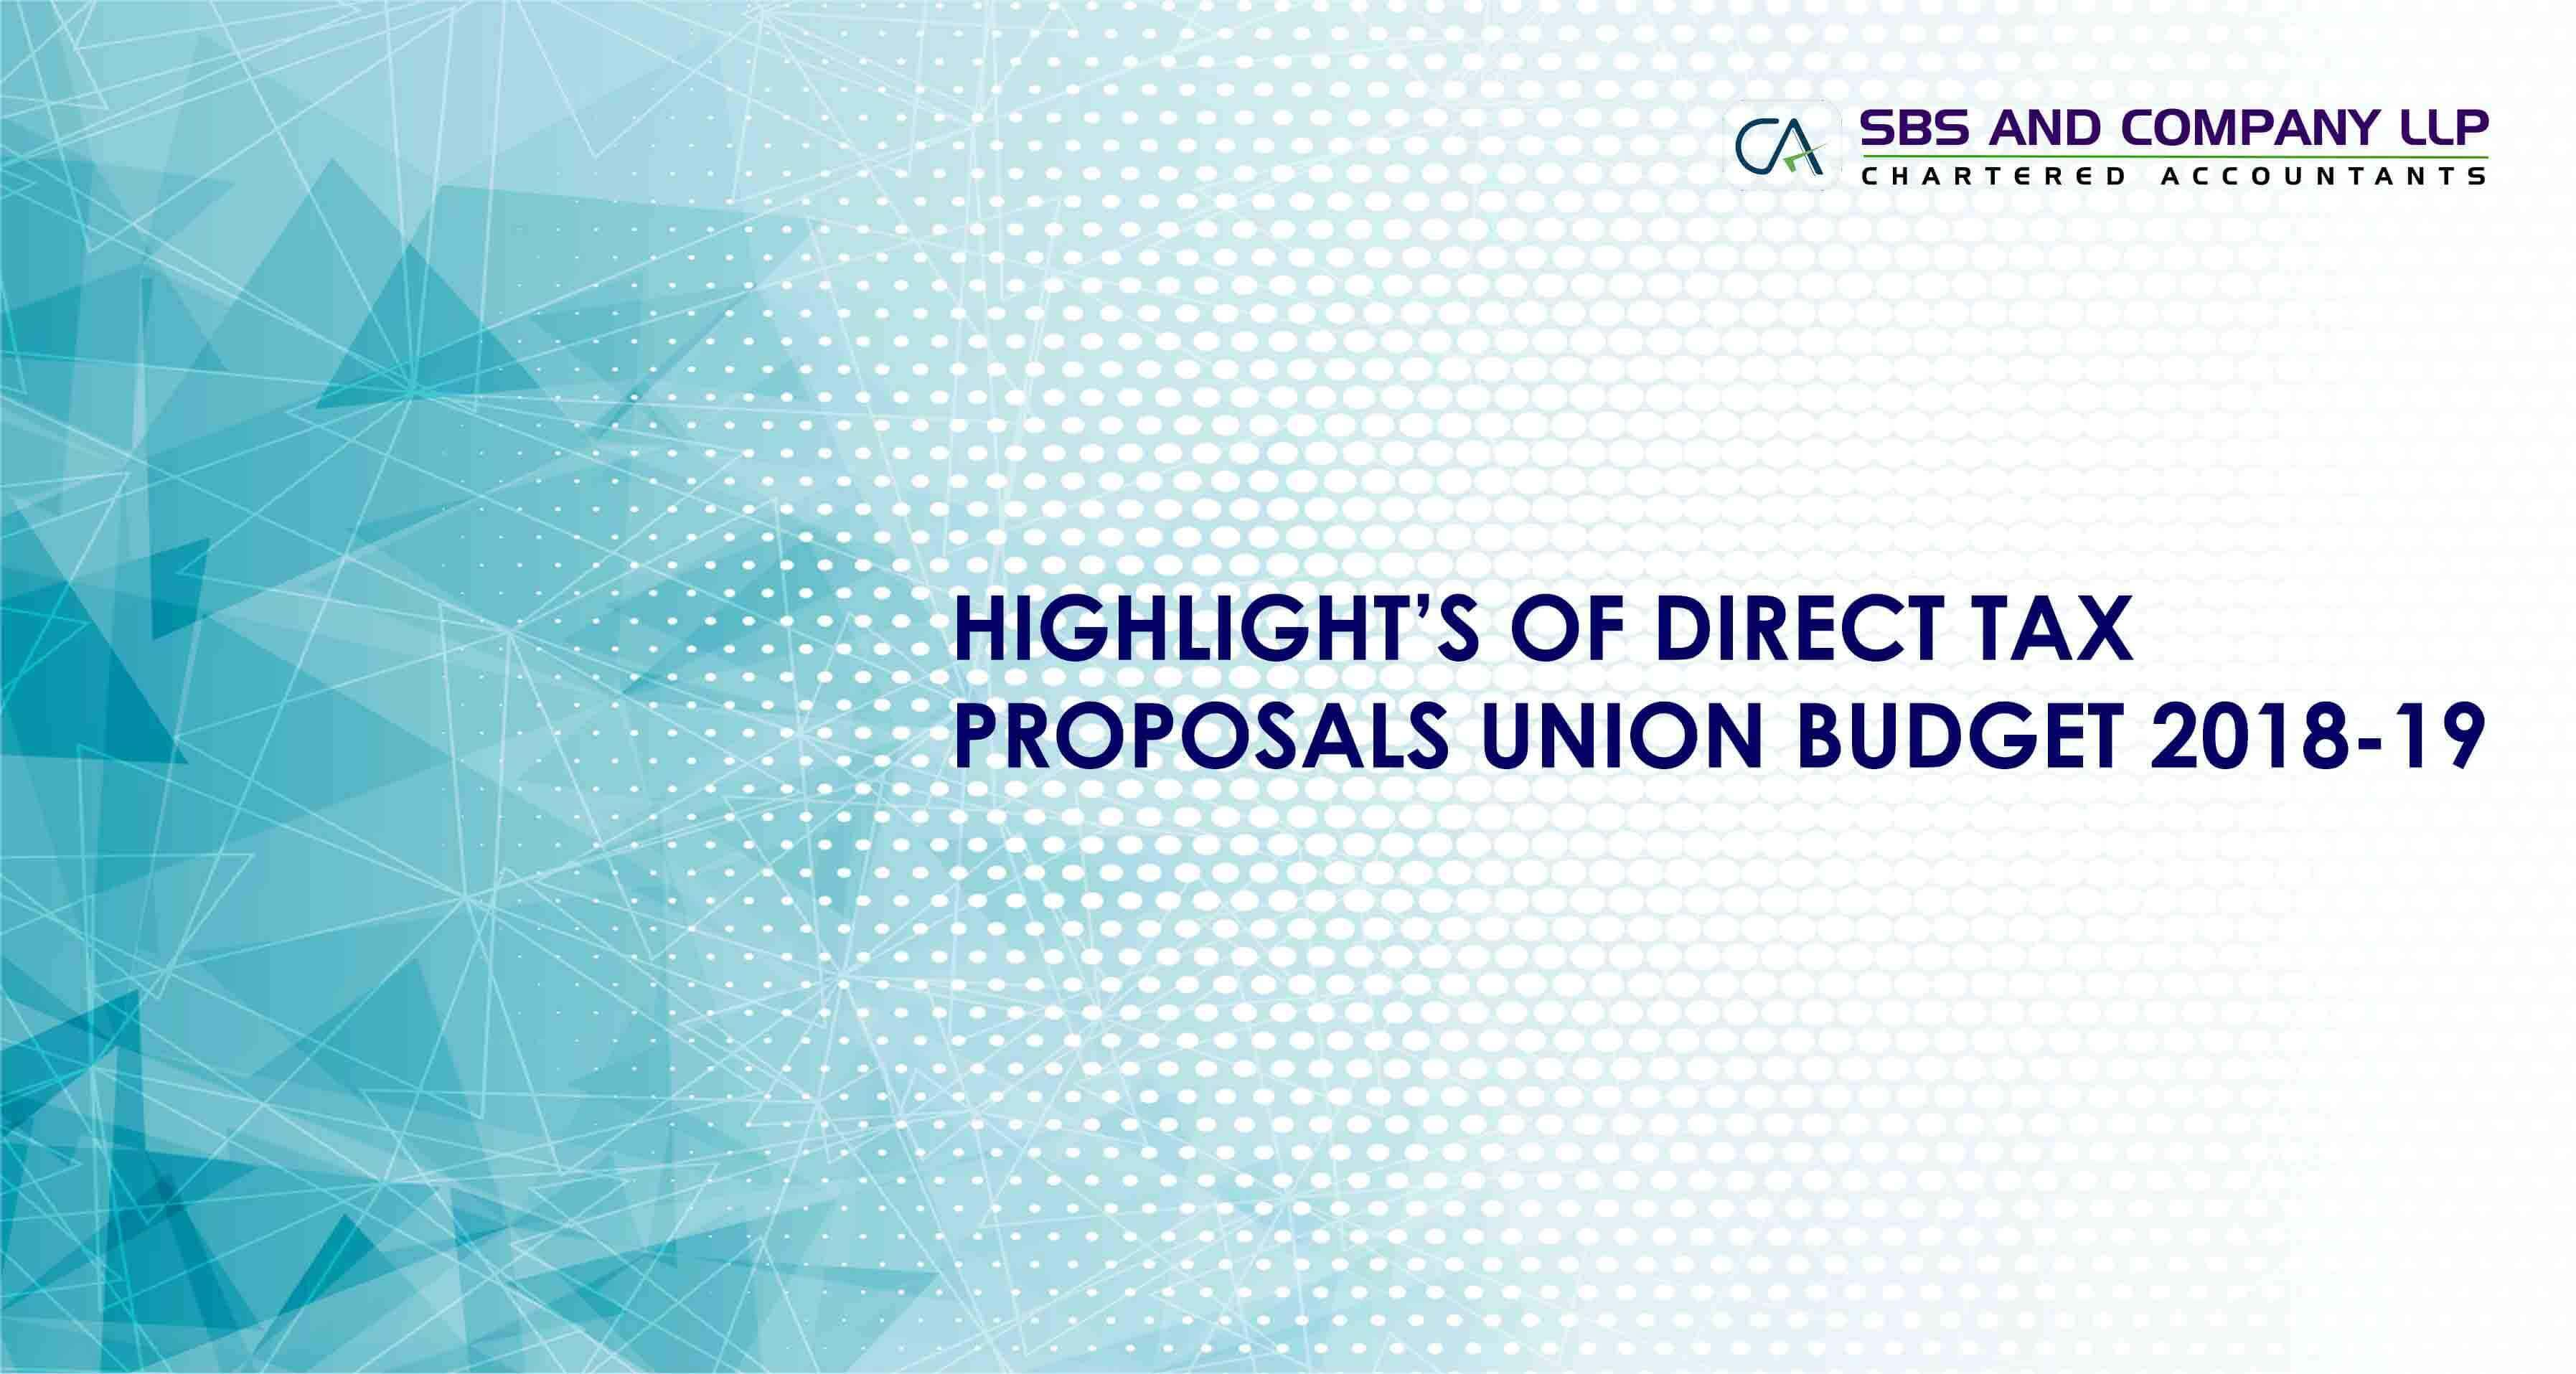 HIGHLIGHT'S OF DIRECT TAX PROPOSALS IN UNION BUDGET 2018-19